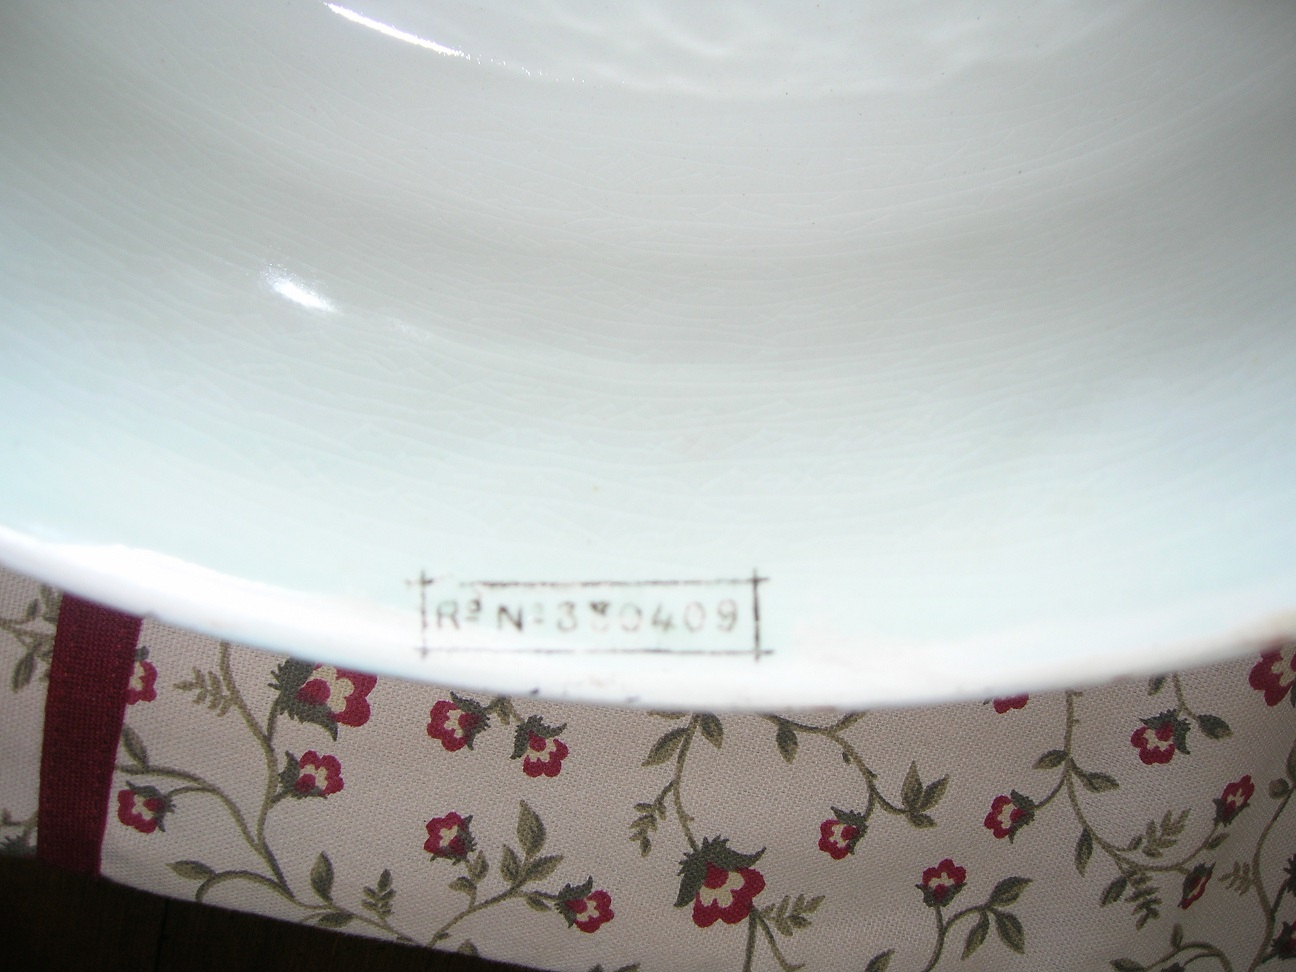 """Super Cheese Dish 12"""" wide by 9"""" Tall. The Reg Pattern no. 330409 puts it in the year of Queen Victoria's Diamond Jubilee . Given the crown shape it´s probably commemorative. Images courtesy of Floyd Bosko"""